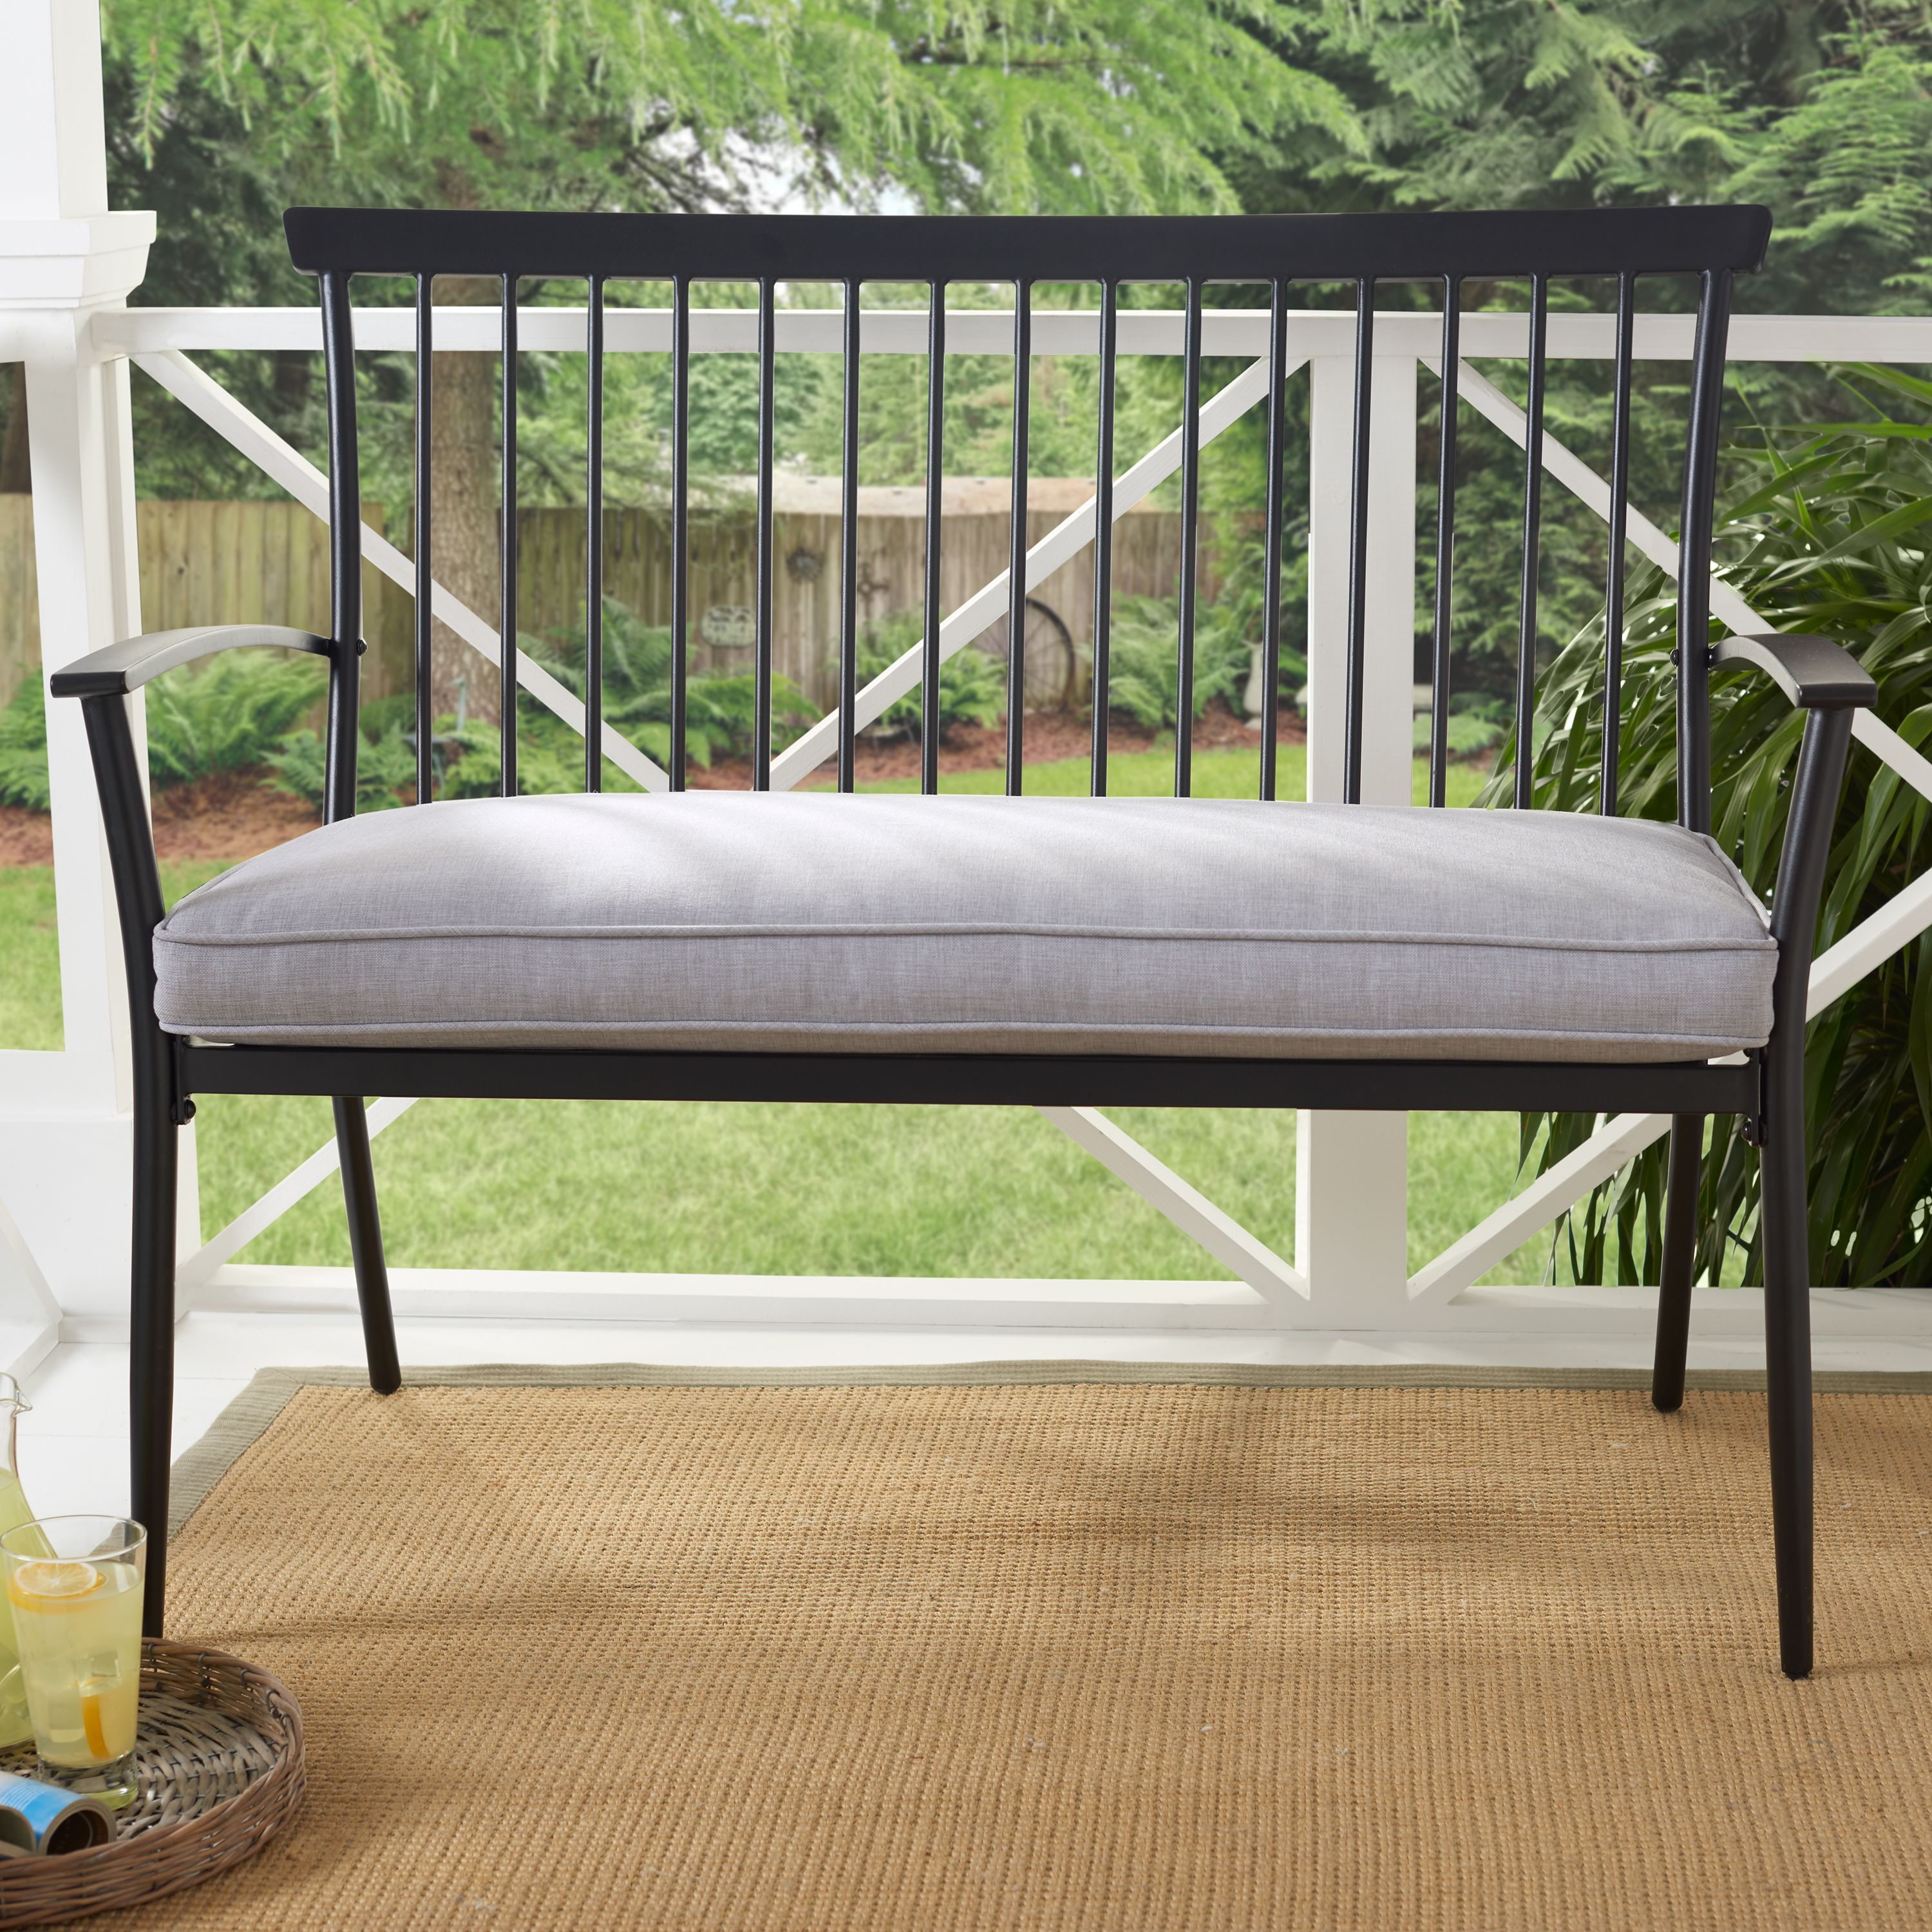 3958893a55478624fb1ebd2e3e78bc79 - Better Homes & Gardens Shaker Patio Bench With Gray Cushion